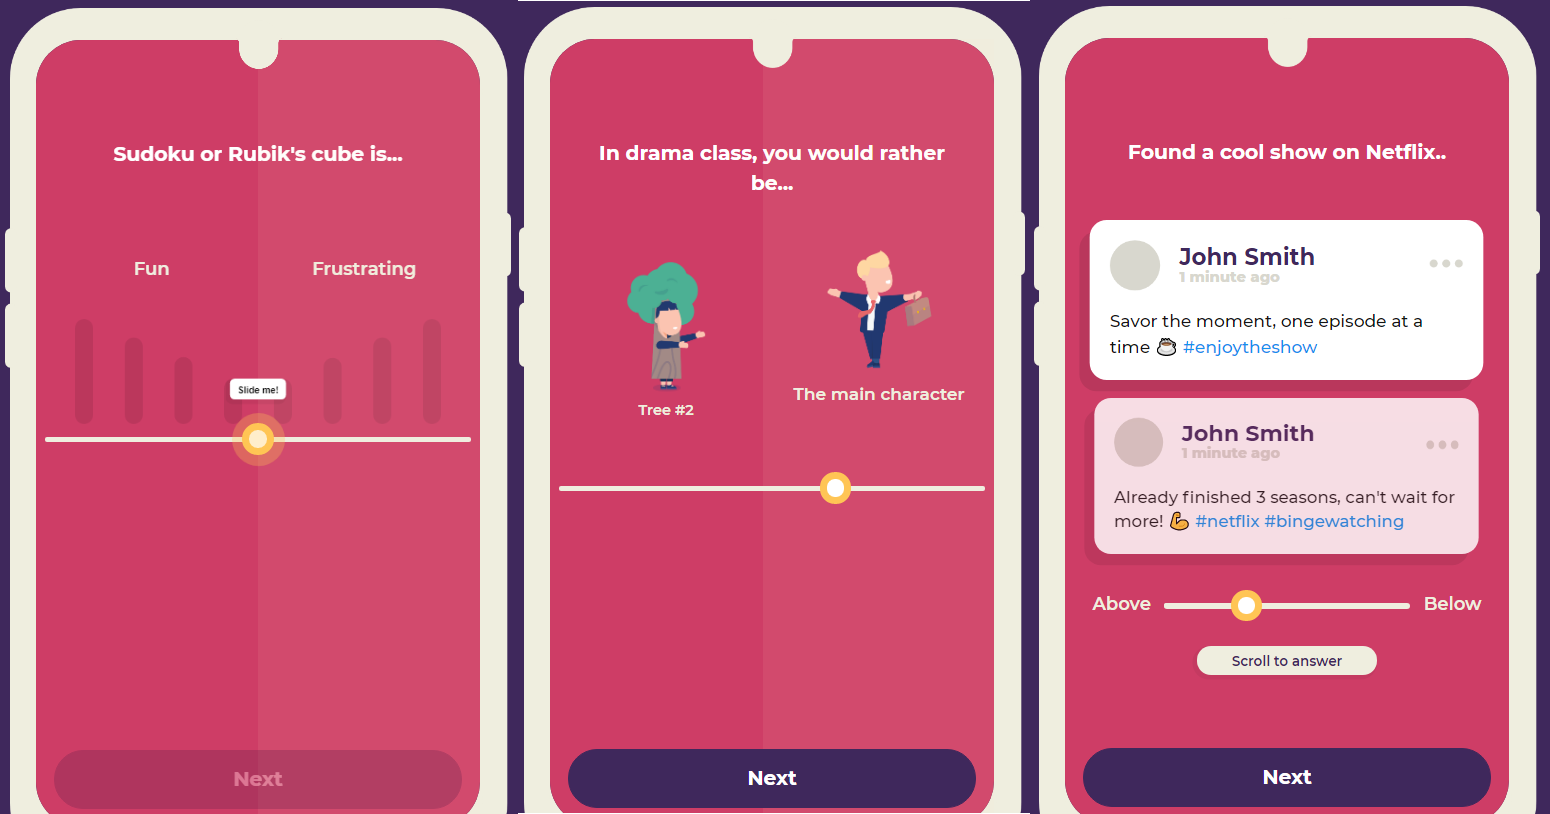 The UI in Dreamtalent is lightweight and gamified in order to improve the experience of the personality test taker. It features a sleek design, images, and mock social media posts.